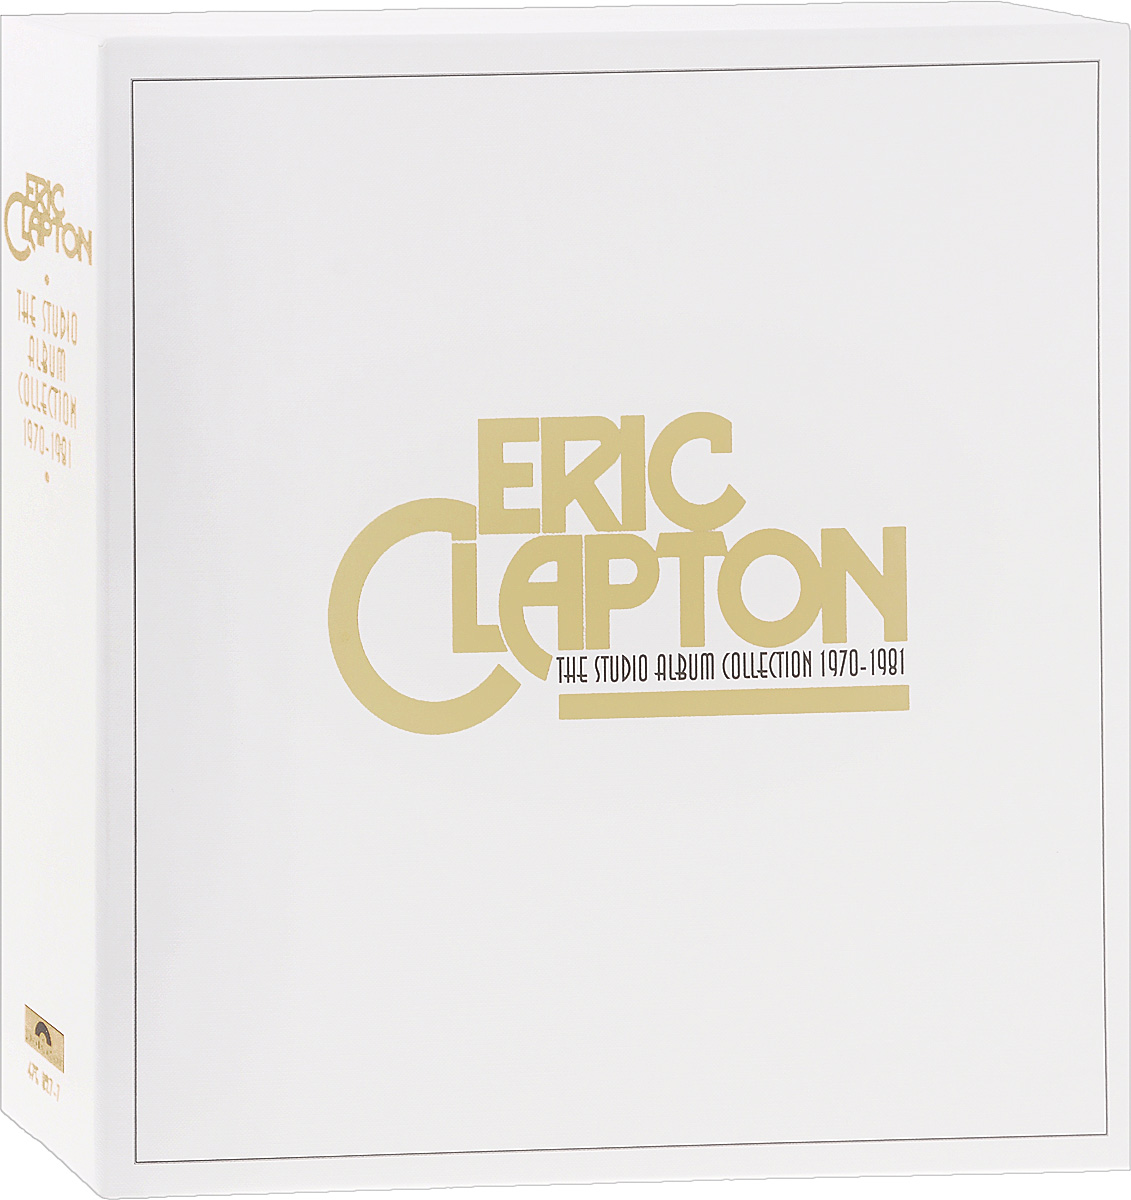 Эрик Клэптон Eric Clapton. The Studio Album Collection. 1970-1981 (9 LP) cathy glass daddy's little princess and will you love me 2 in 1 collection